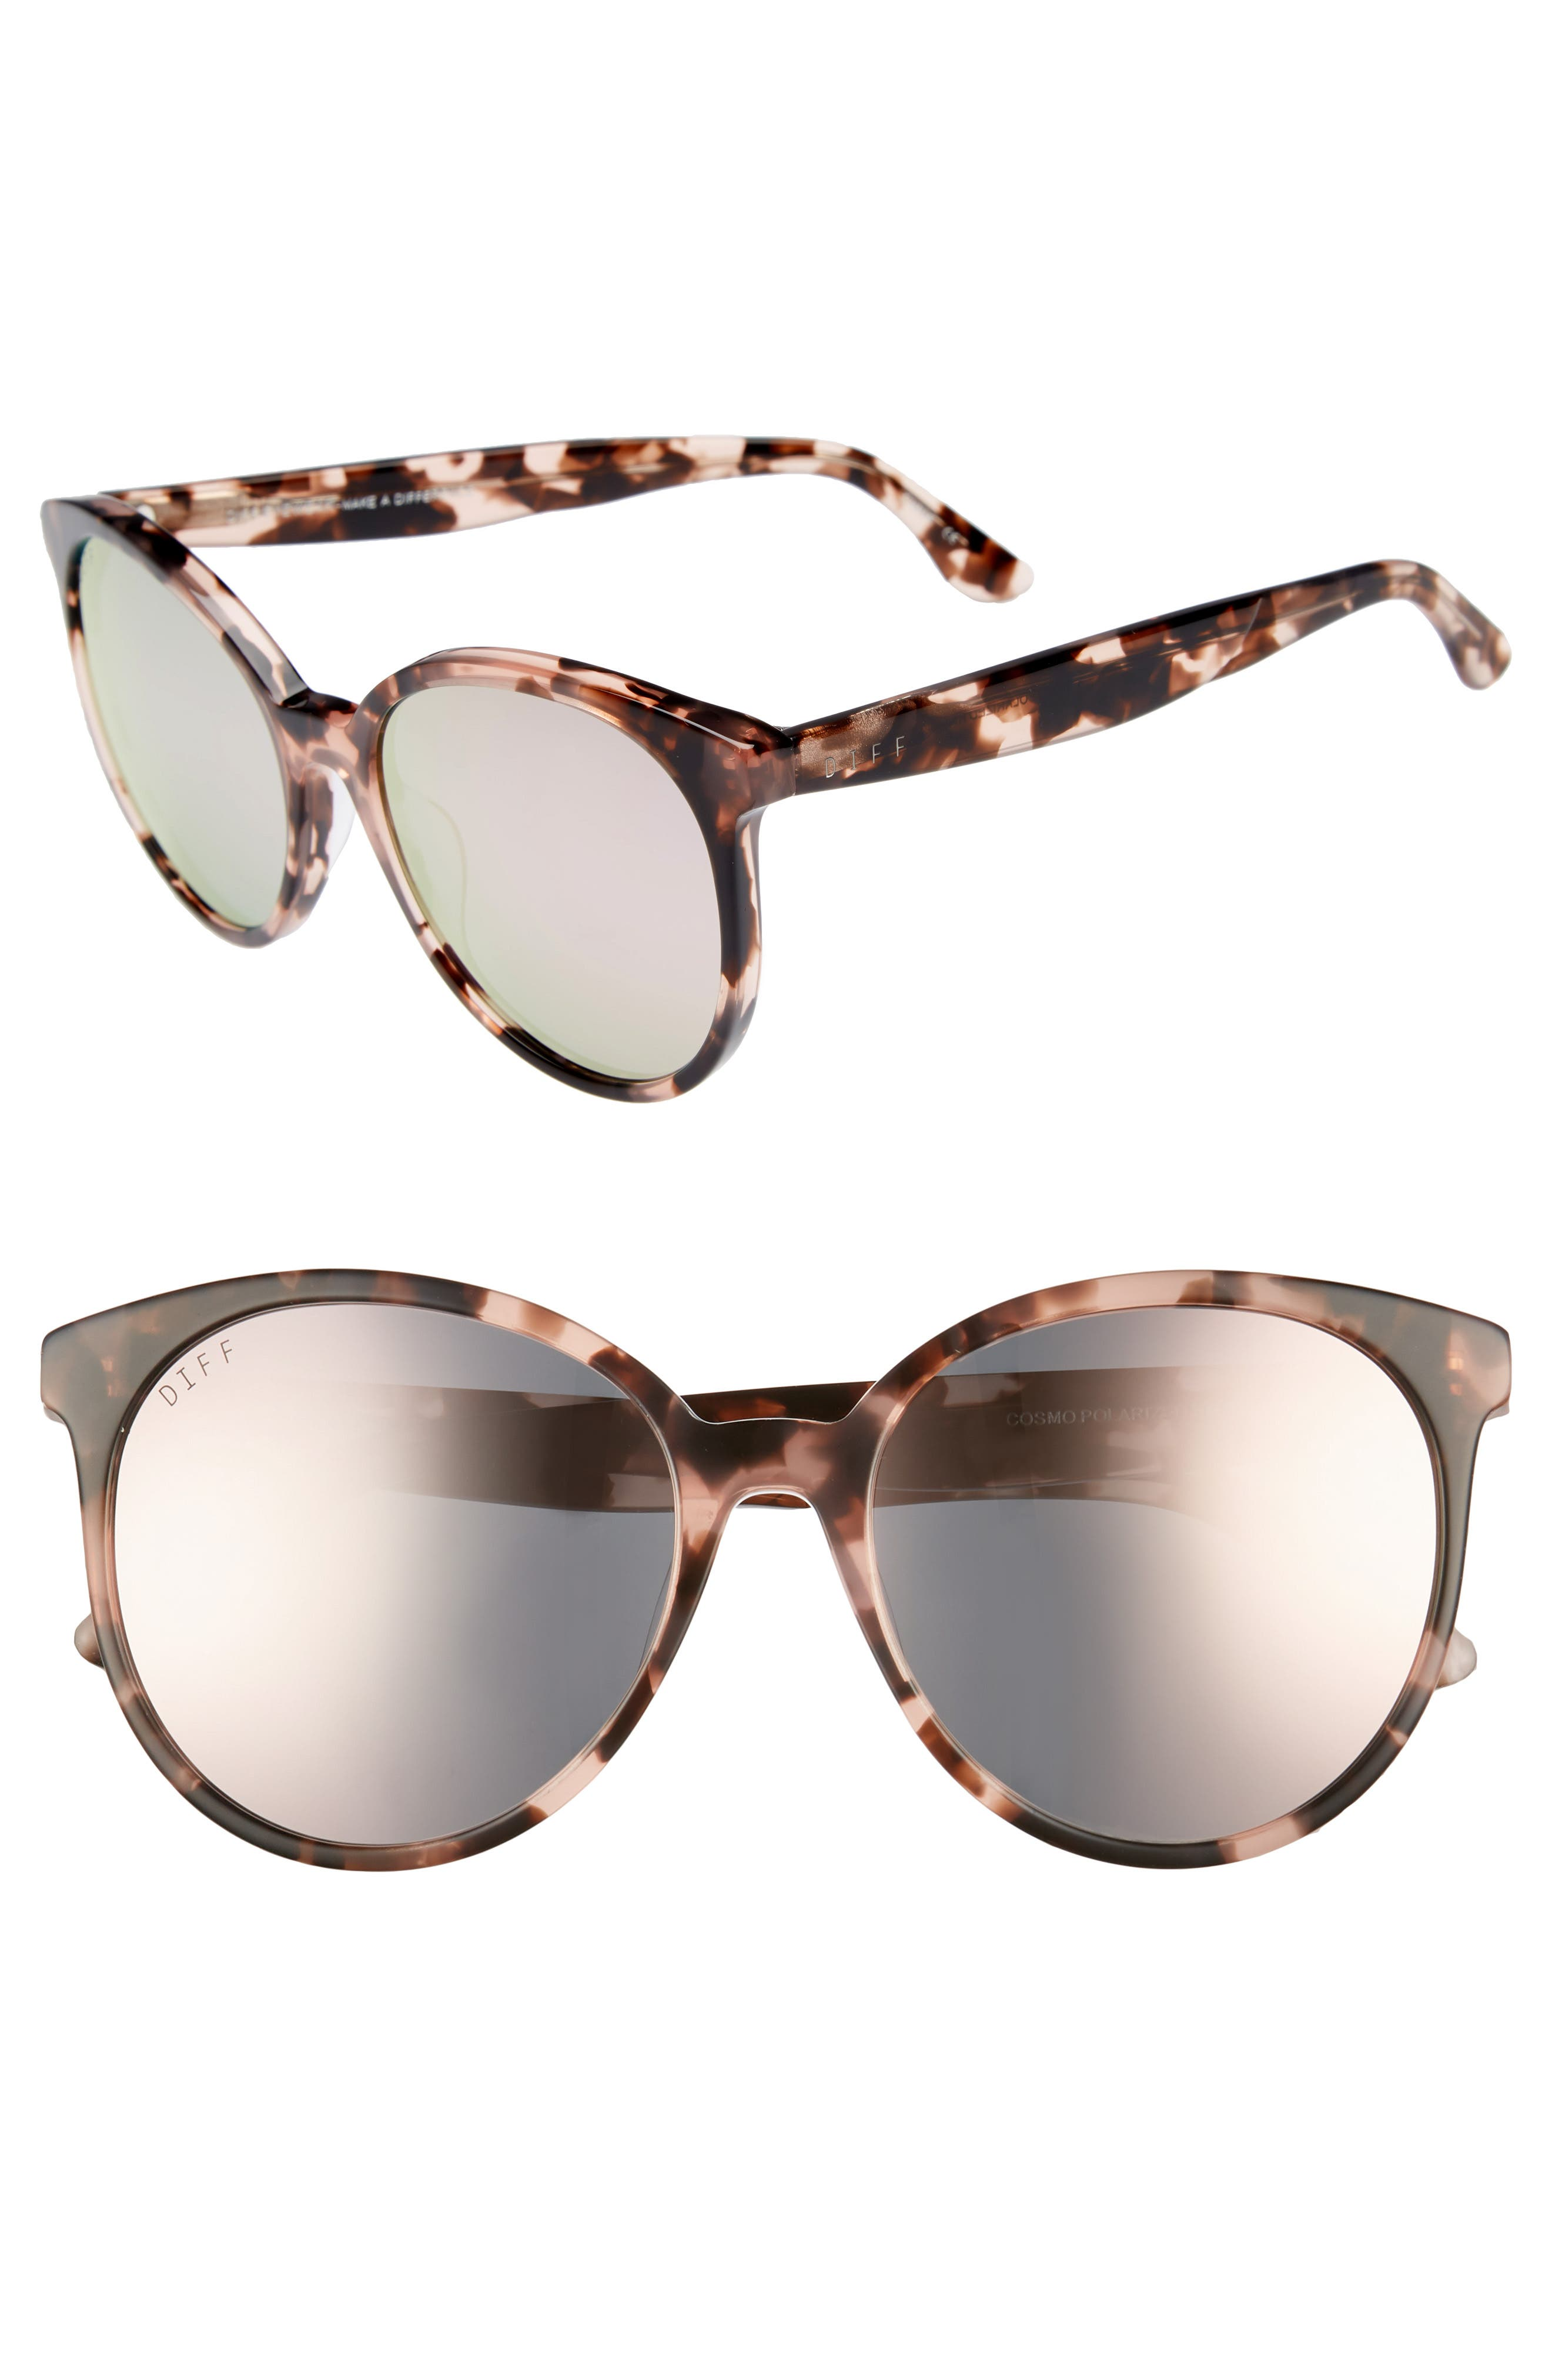 Cosmo 56mm Polarized Round Sunglasses,                             Main thumbnail 1, color,                             HIMALAYAN TORTOISE/ TAUPE